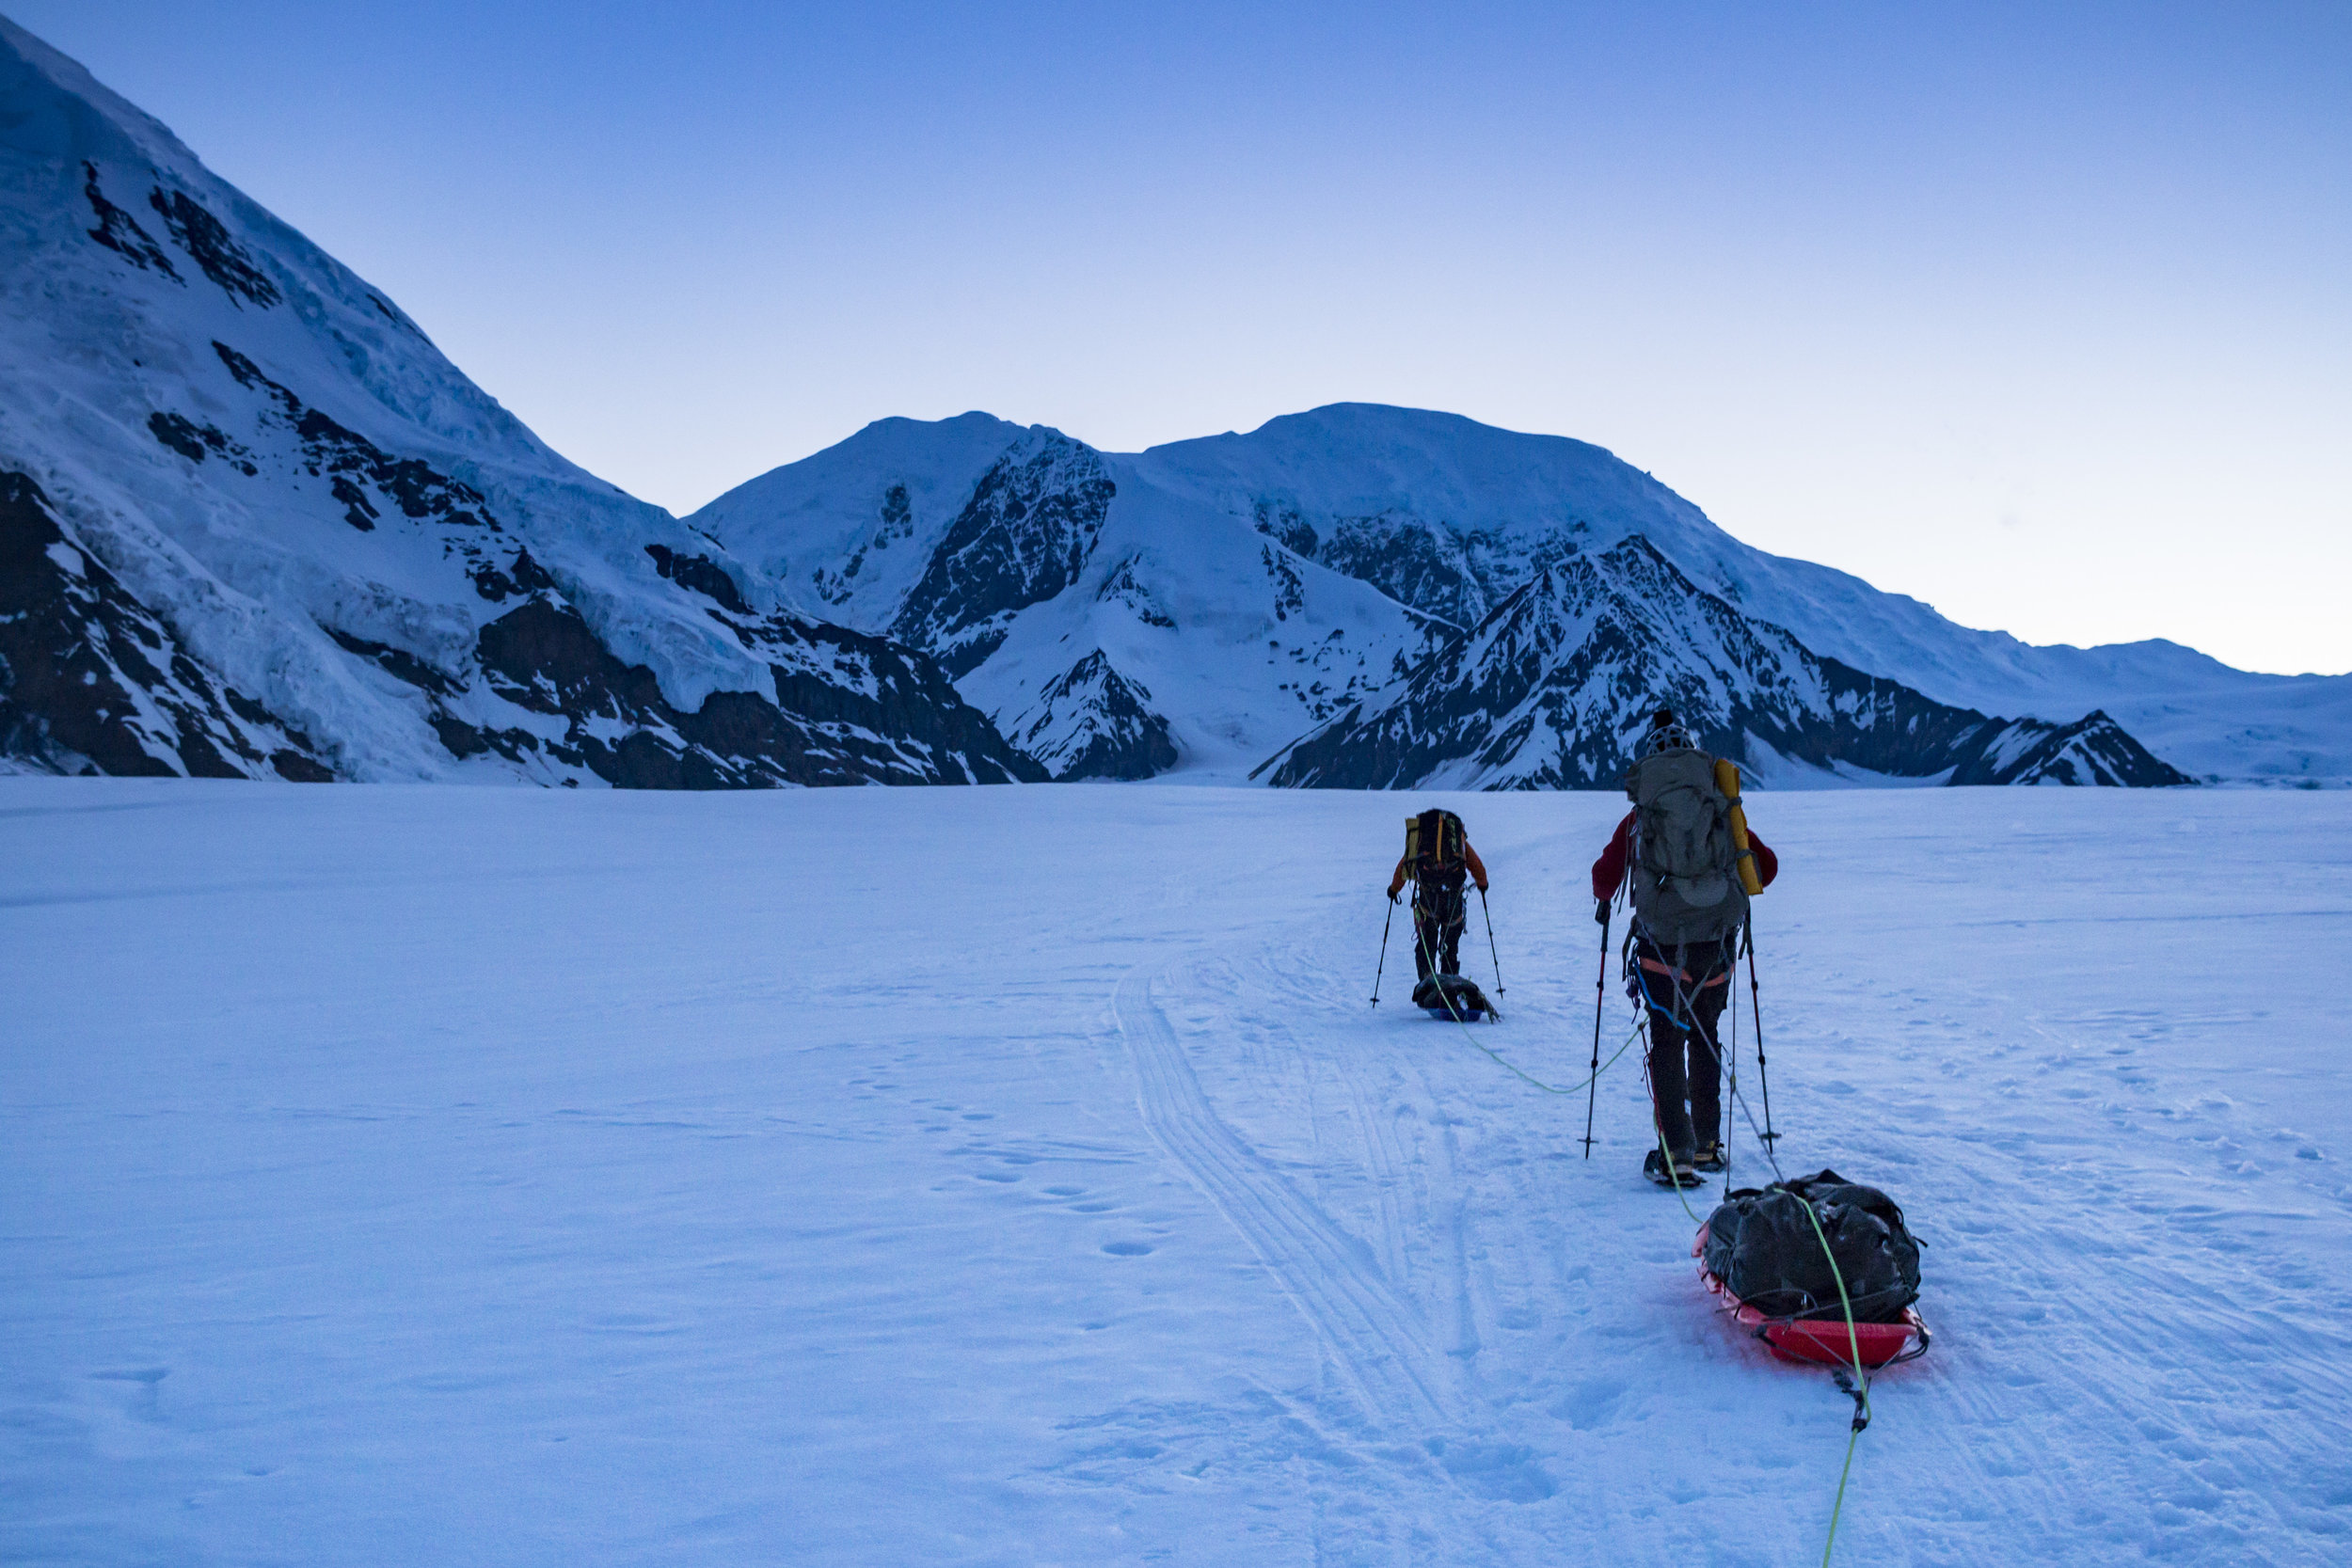 Dragging our gear across the glacier on day one.